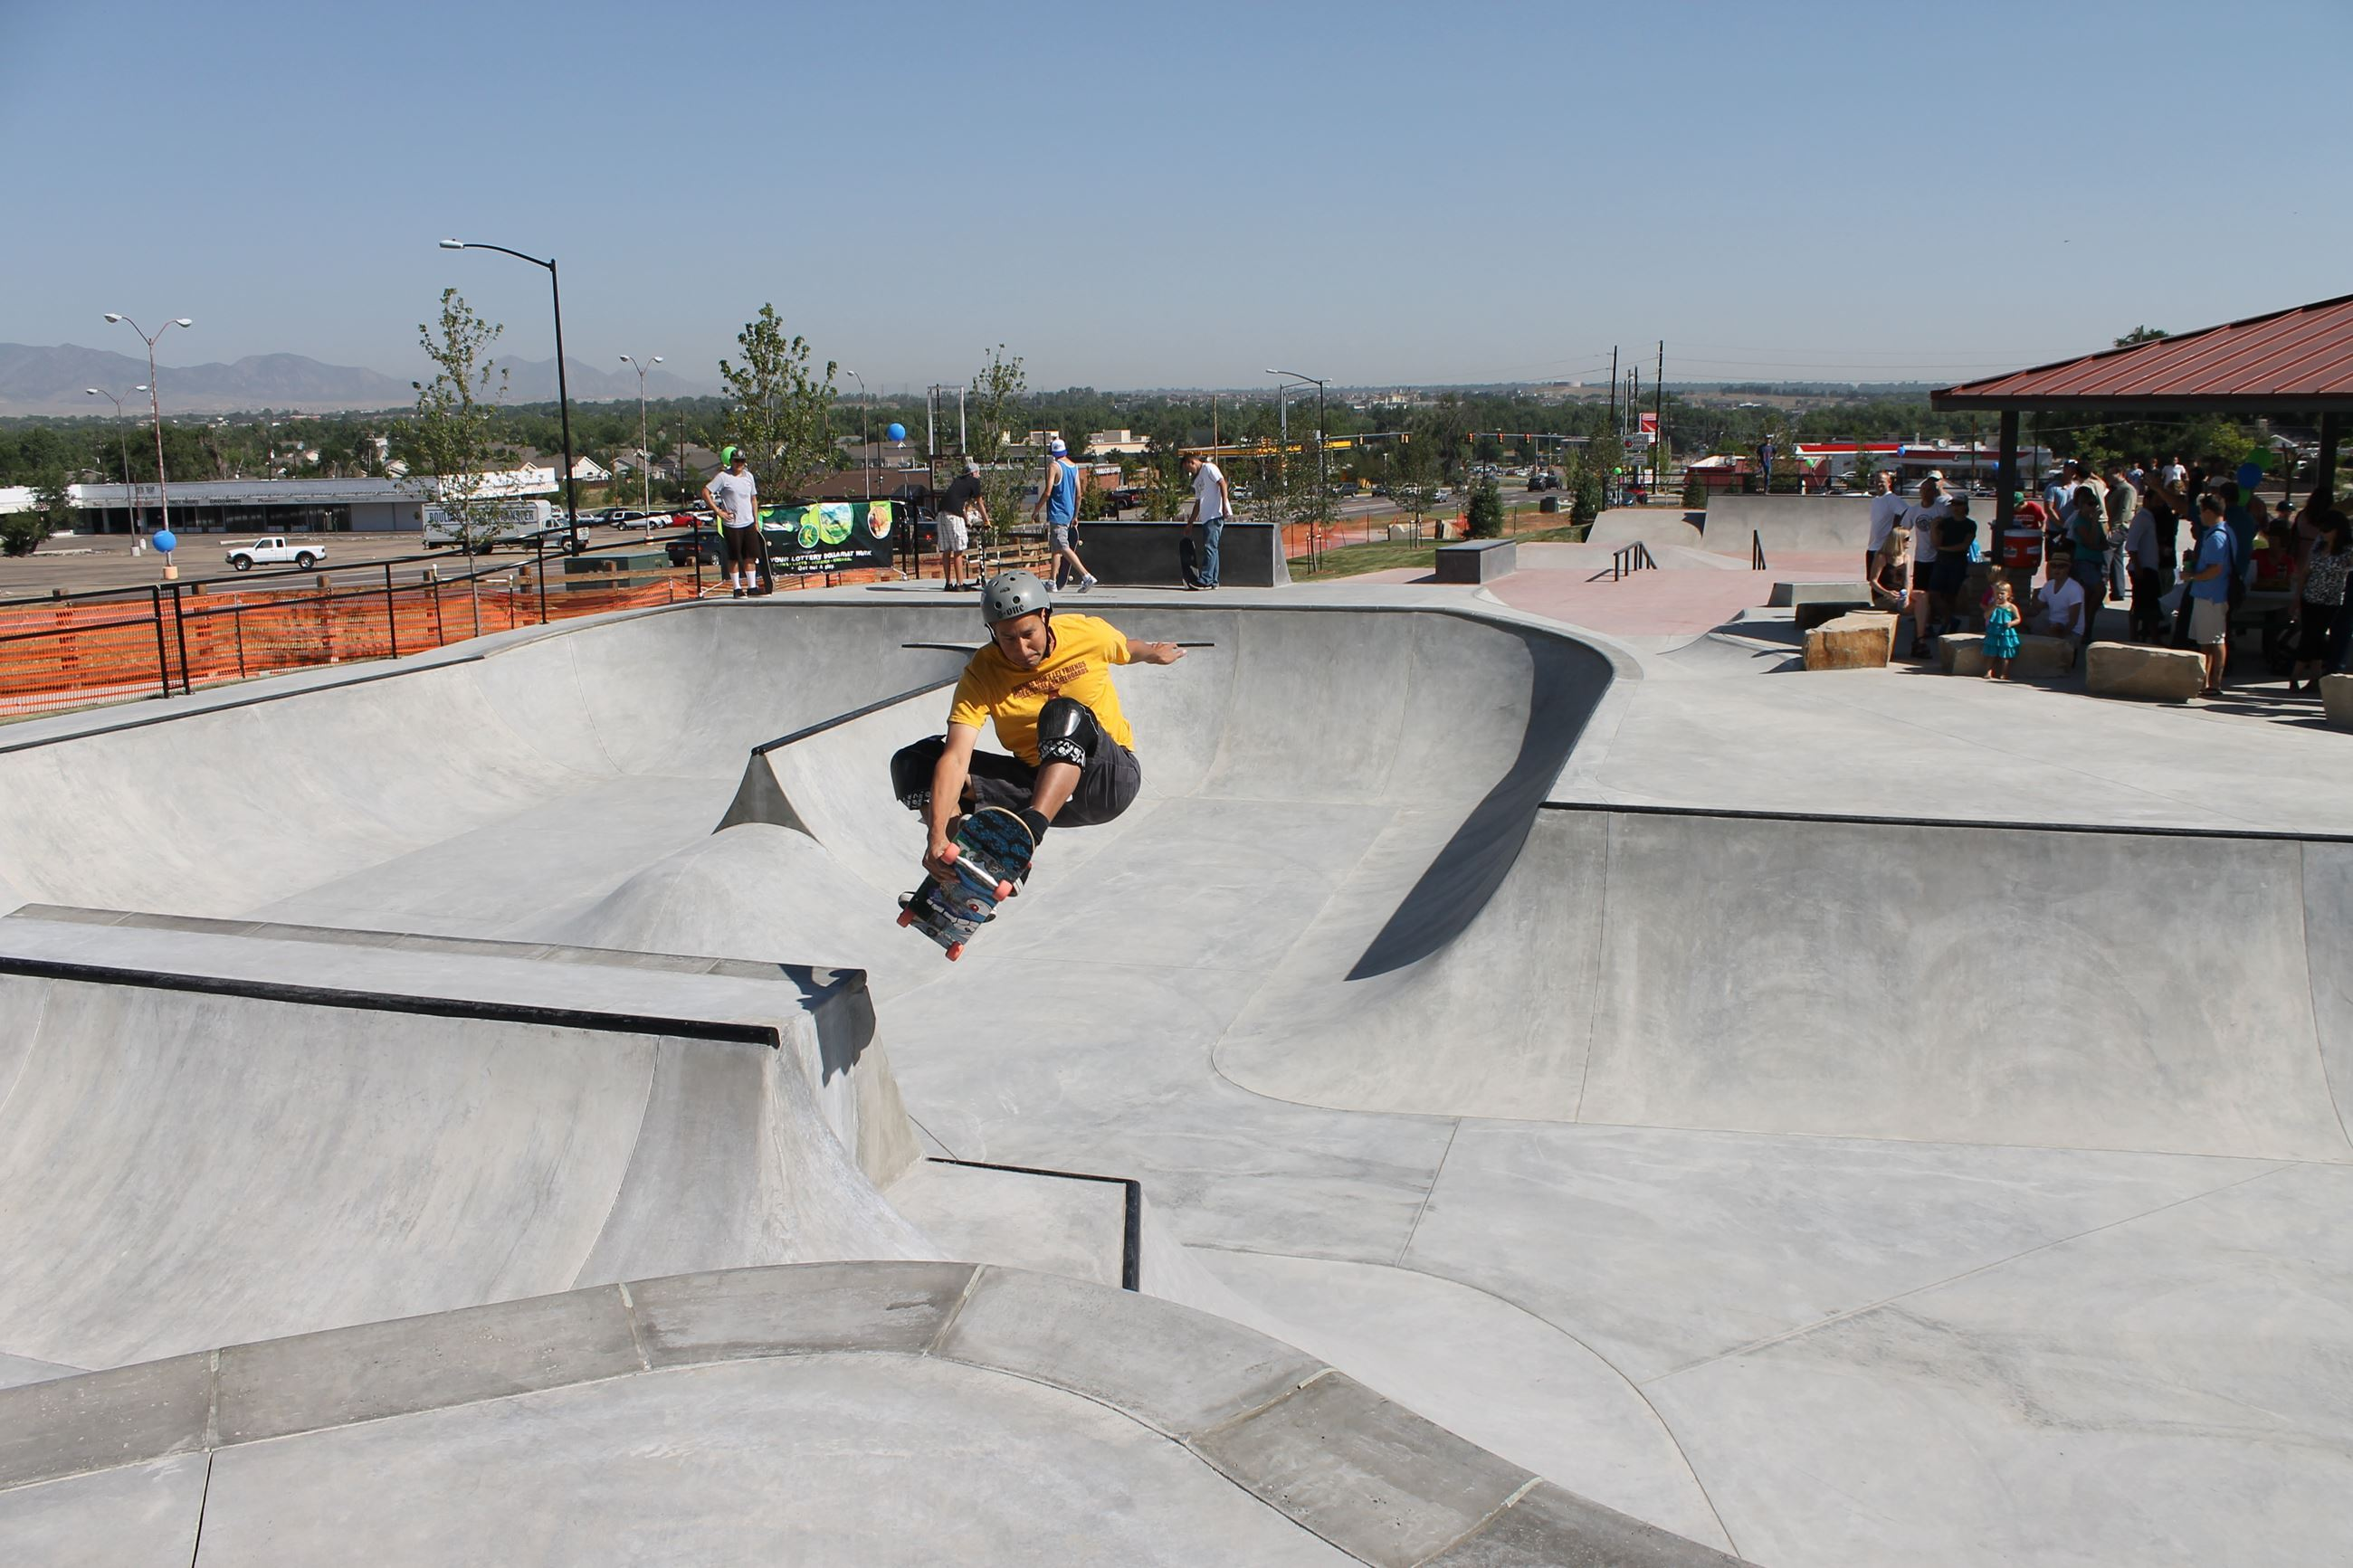 Boy in the skate park